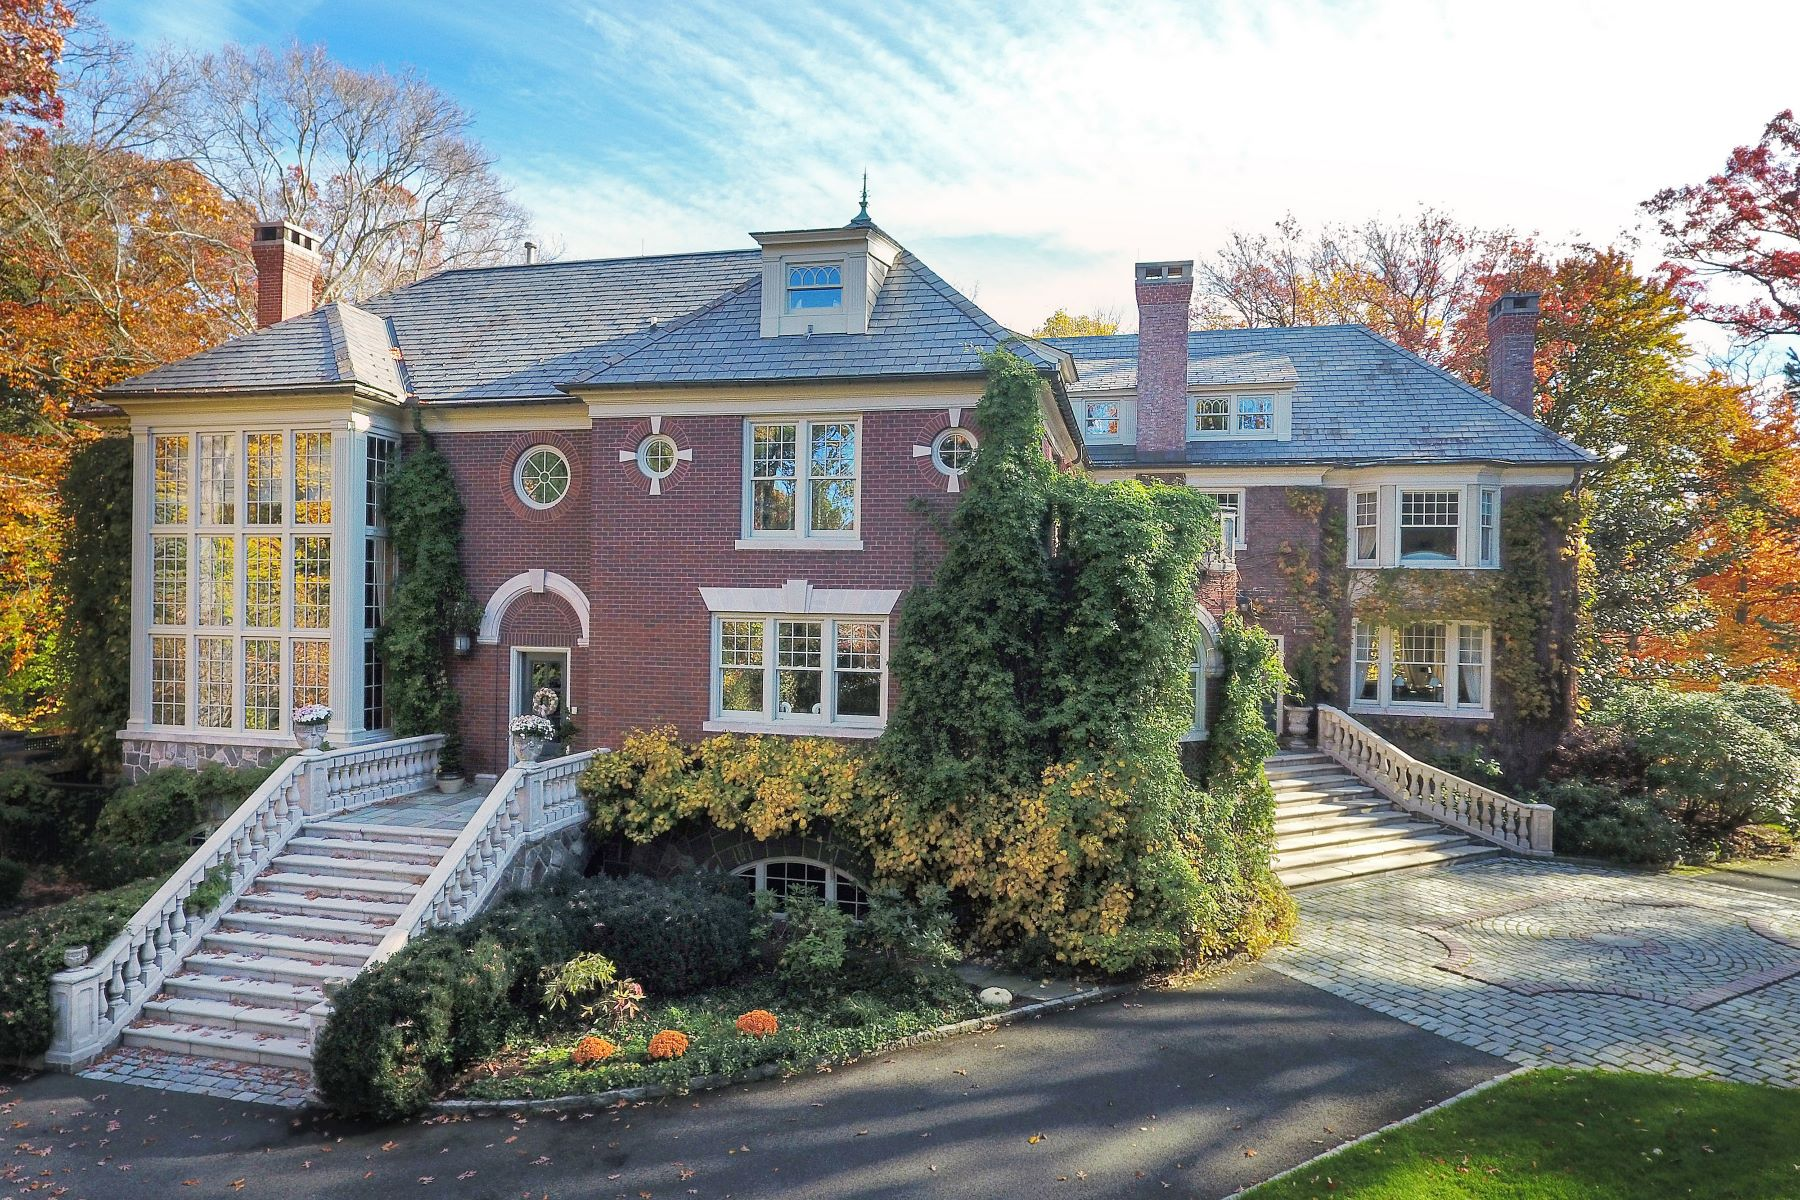 Casa Unifamiliar por un Venta en Elegant Brick Georgian Style Estate. 11 Ridge Road Summit, Nueva Jersey 07 Estados Unidos